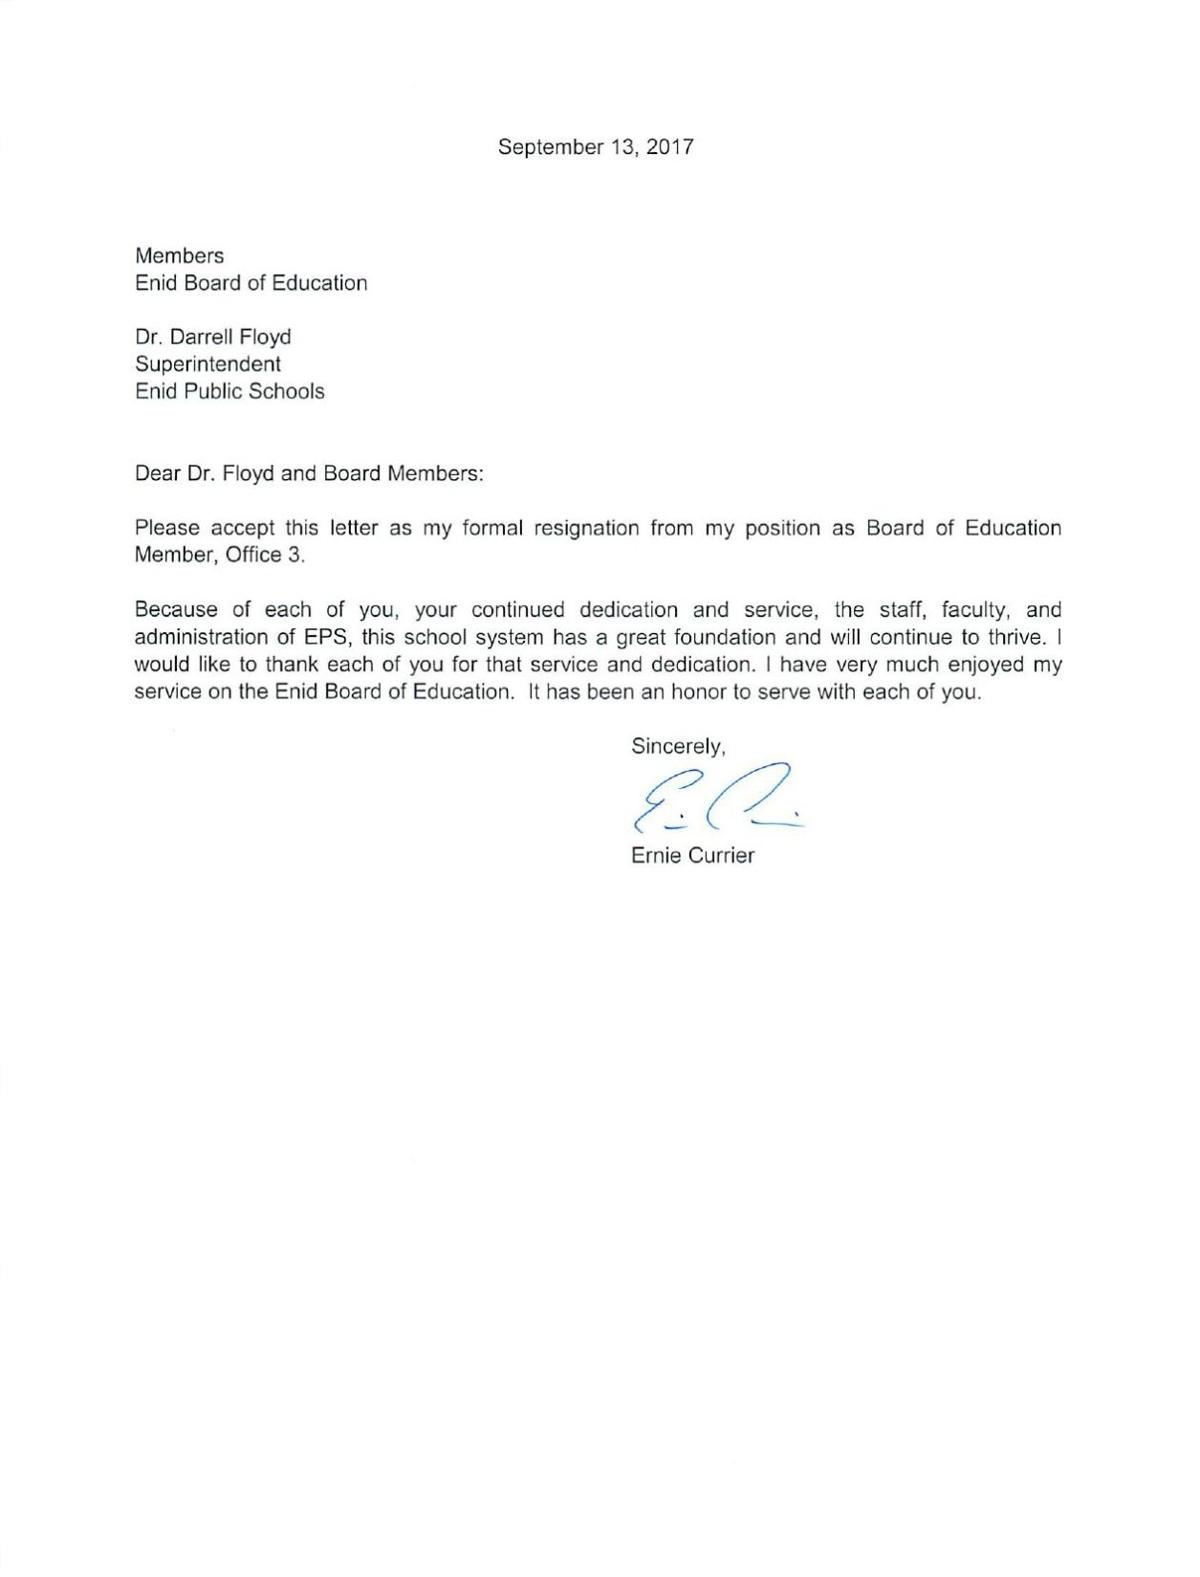 Sample Resignation Letter From Board Member from bloximages.chicago2.vip.townnews.com